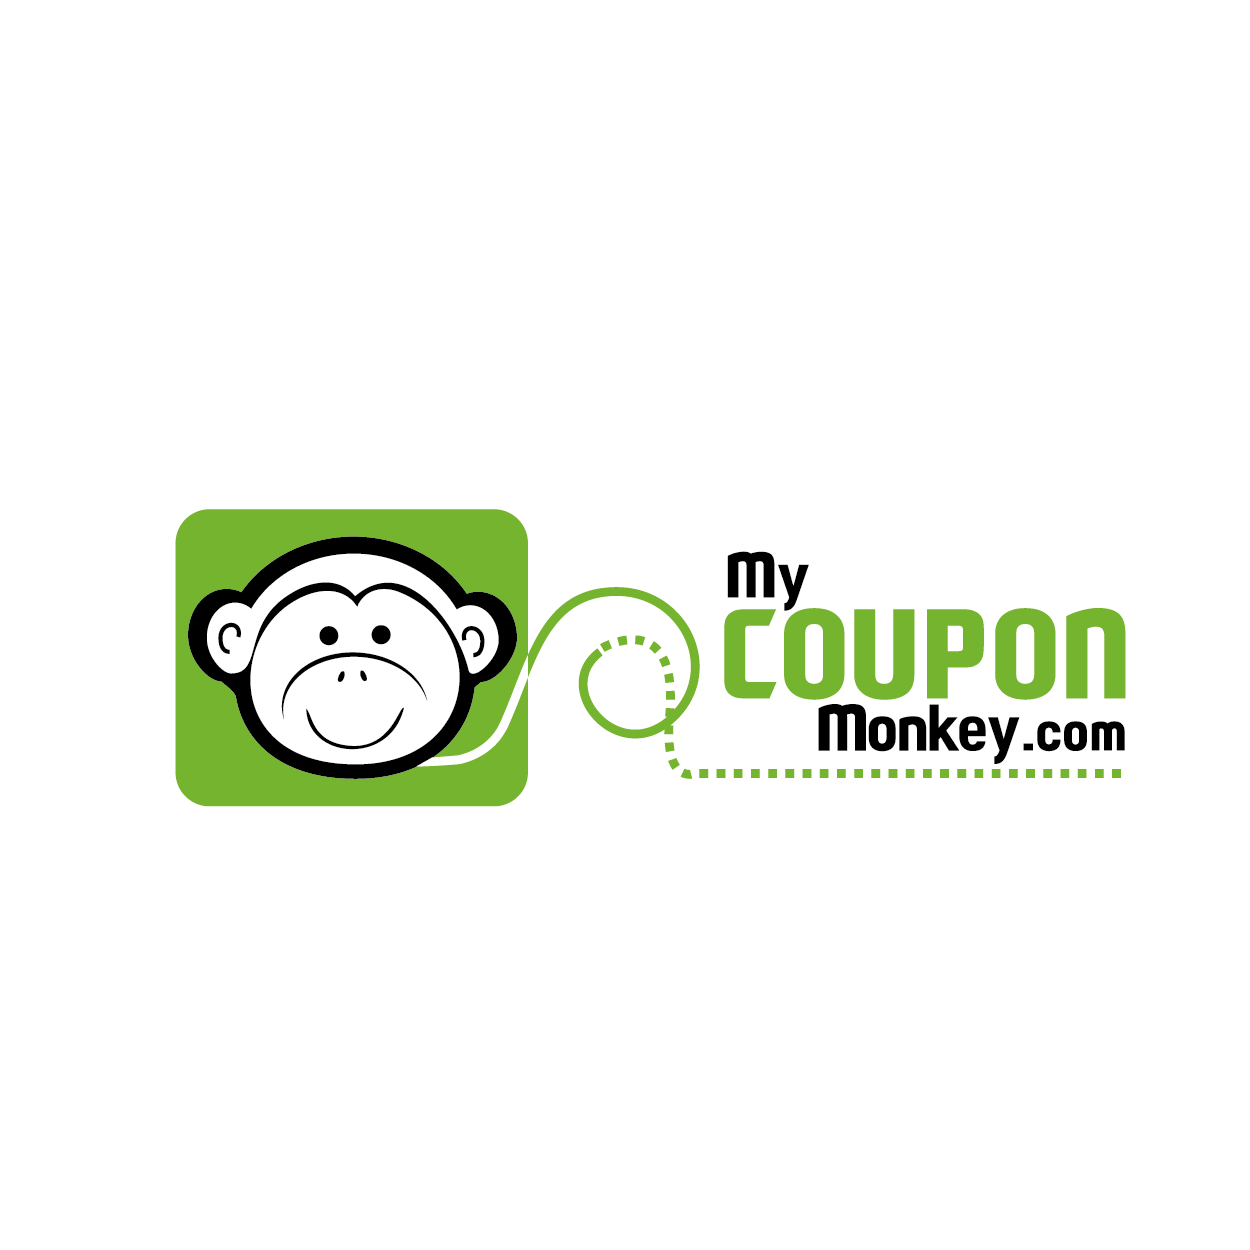 Logo for Online Coupon Site - Advertising